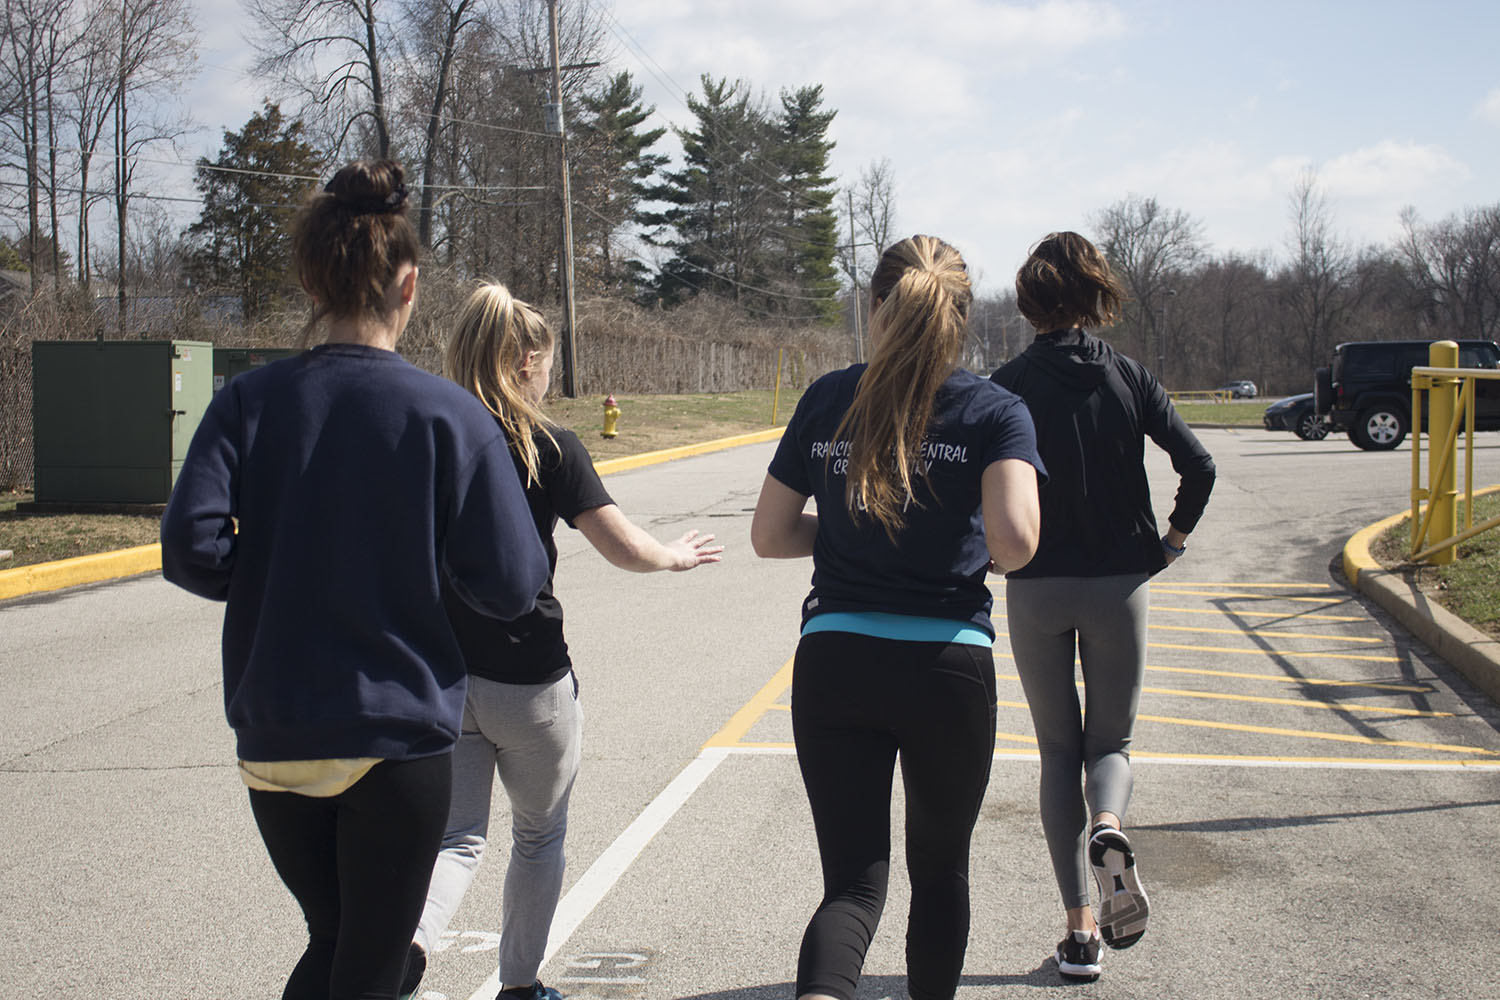 Four members of the track and field team run during practice to prepare their bodies for performance. This is part of what junior Mikayala Aubuchon attributes to their success.